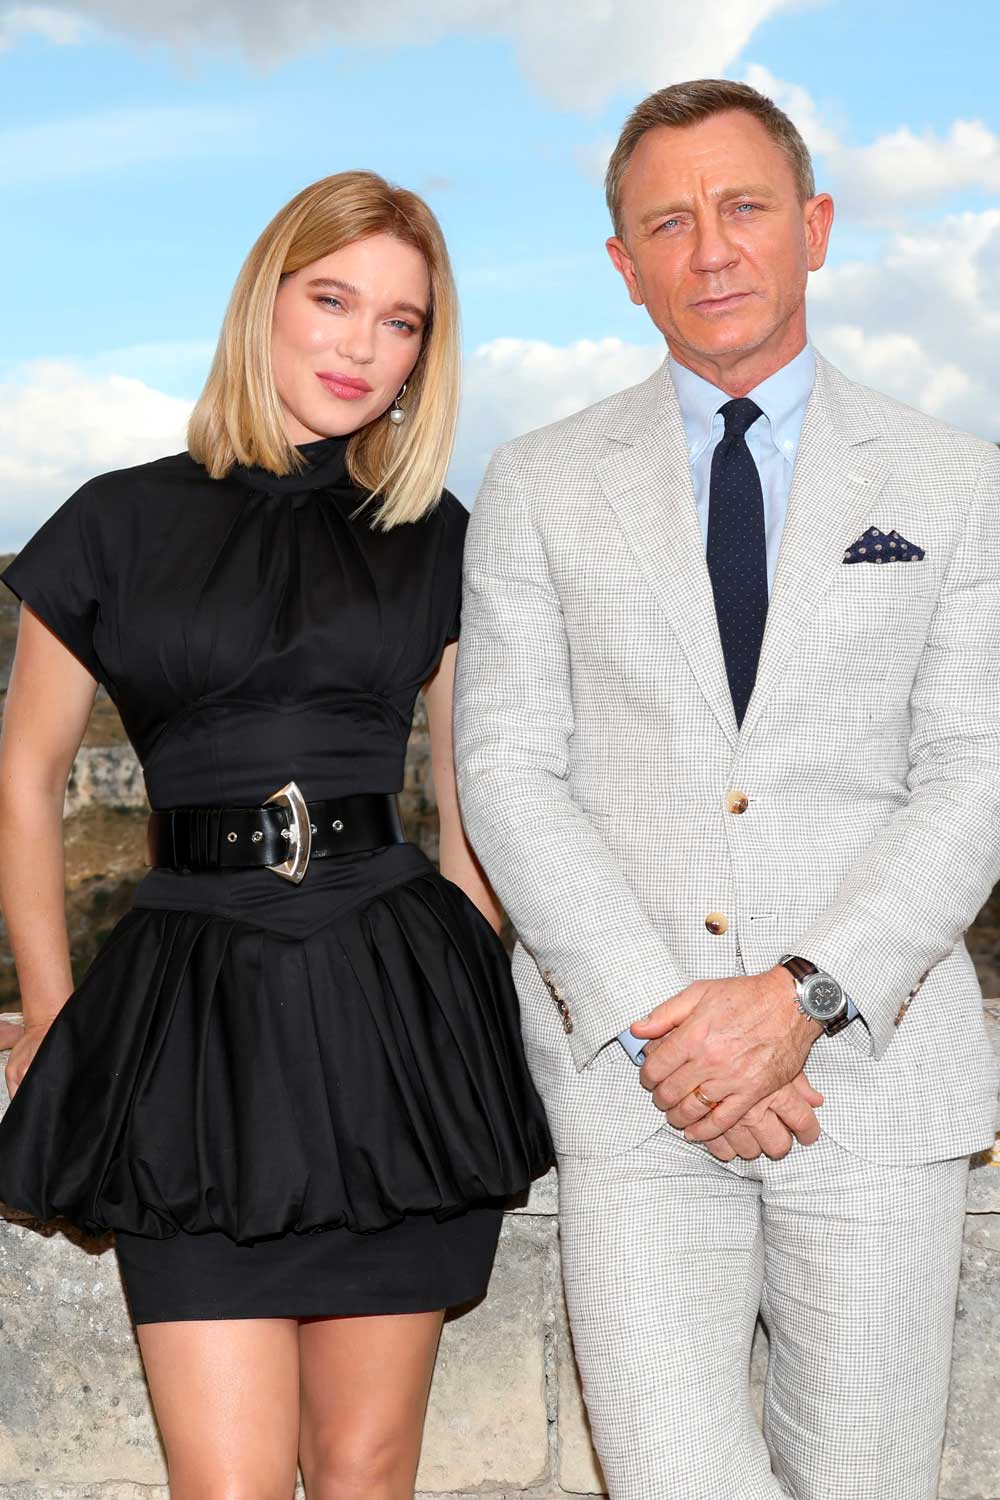 "MATERA, ITALY - SEPTEMBER 09: Actress Léa Seydoux and actor Daniel Craig pose as they arrive on set of the James Bond last movie ""No Time To Die"" on September 09, 2019 in Matera, Italy. on Craig's wrist in clear view is the 2017 Omega Speedmaster '57 Chronograph from the 1957 Trilogy on a NATO strap (Photo by Franco Origlia/Getty Images)"